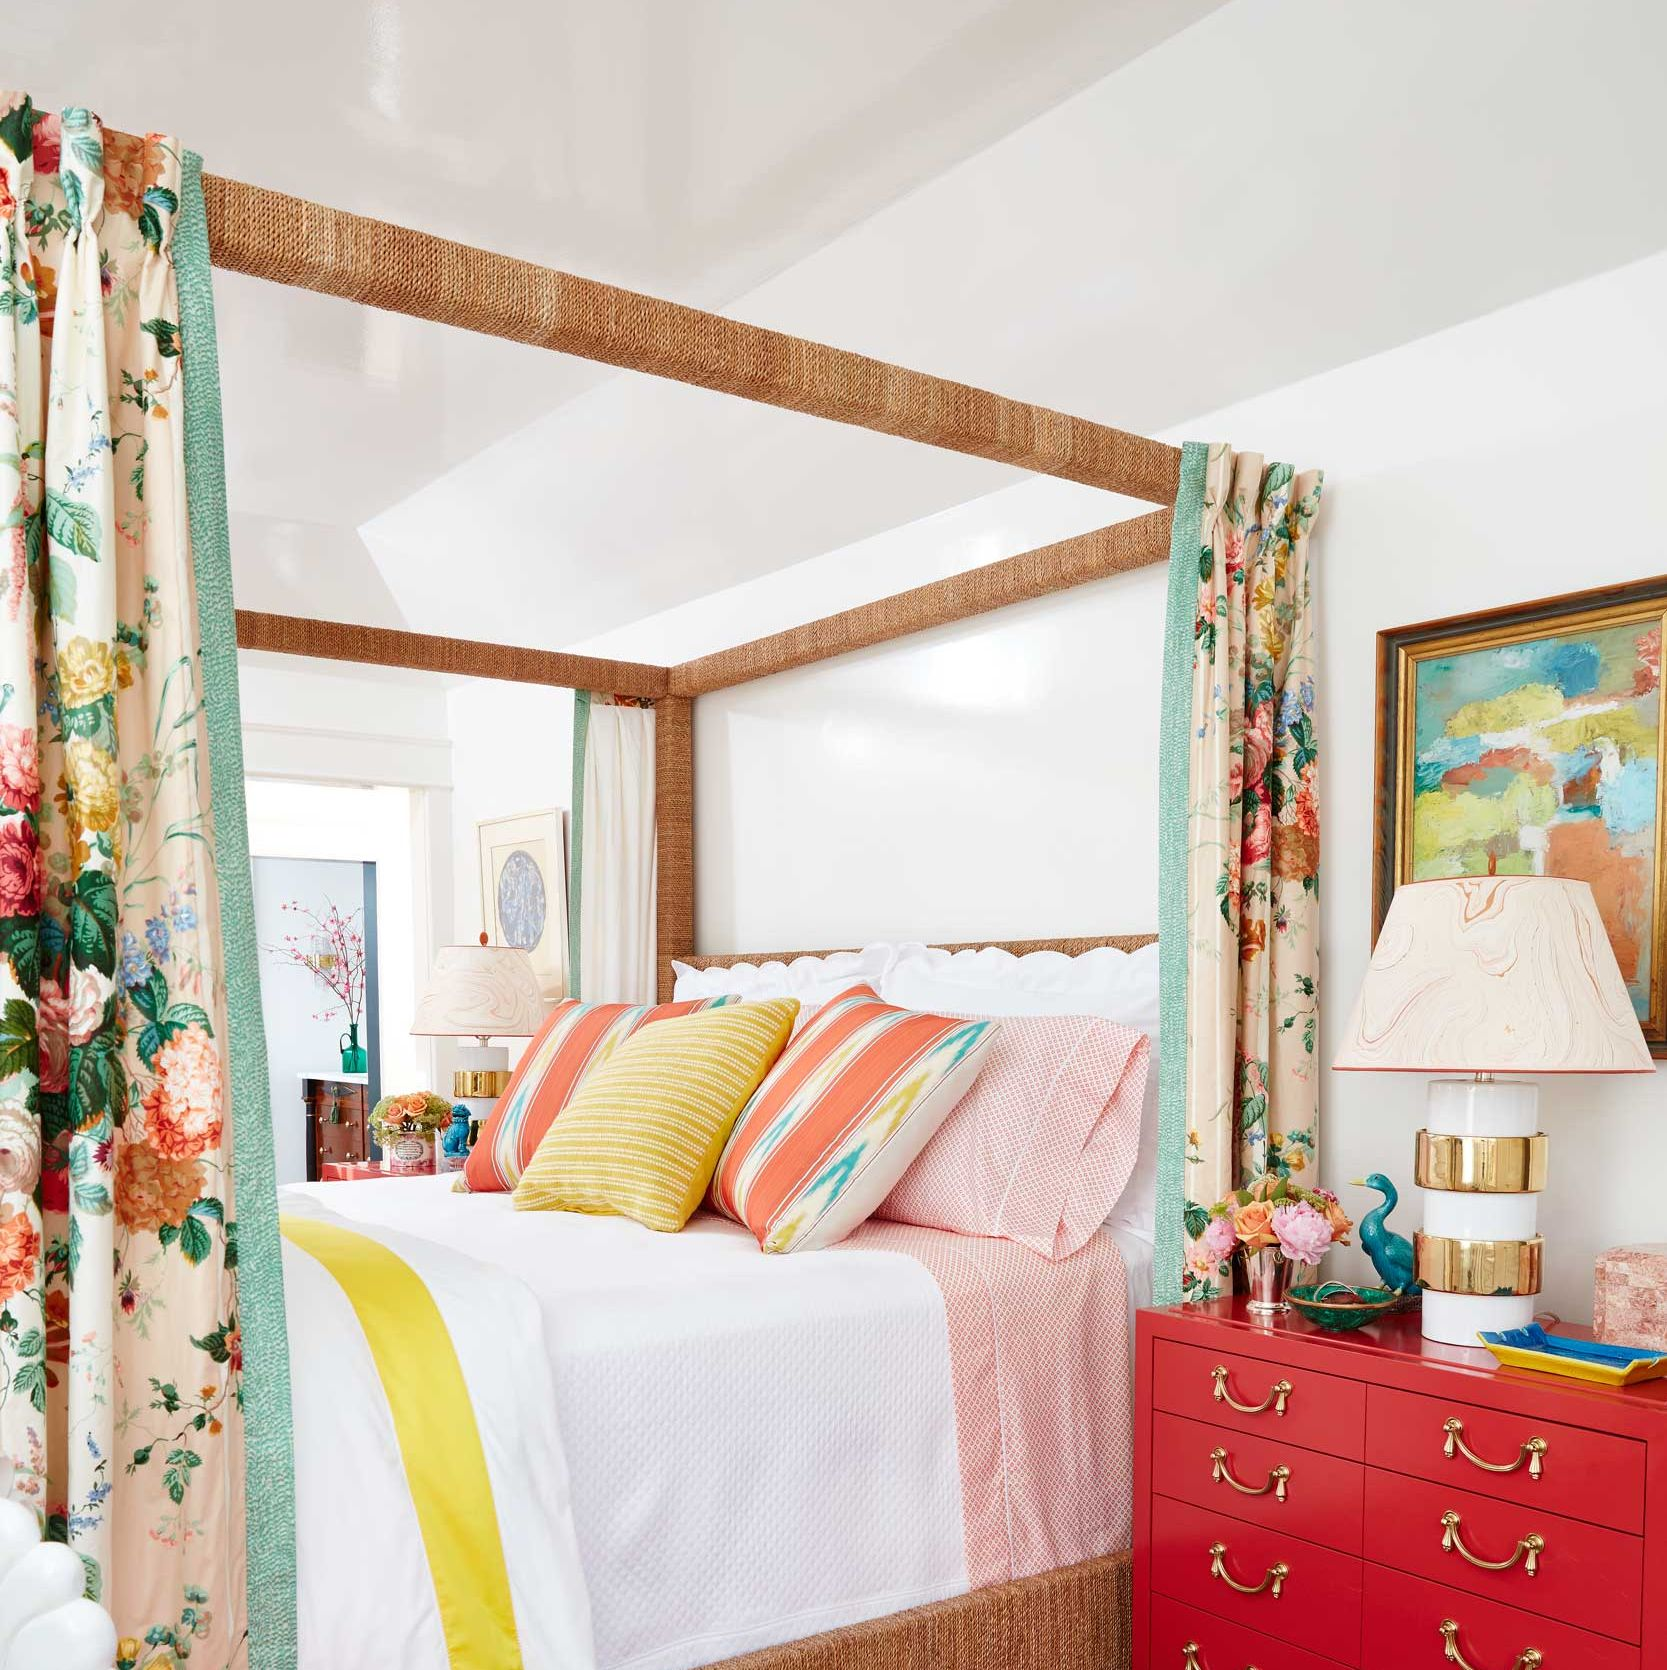 How Installing a Tray Ceiling Can Totally Transform a Room